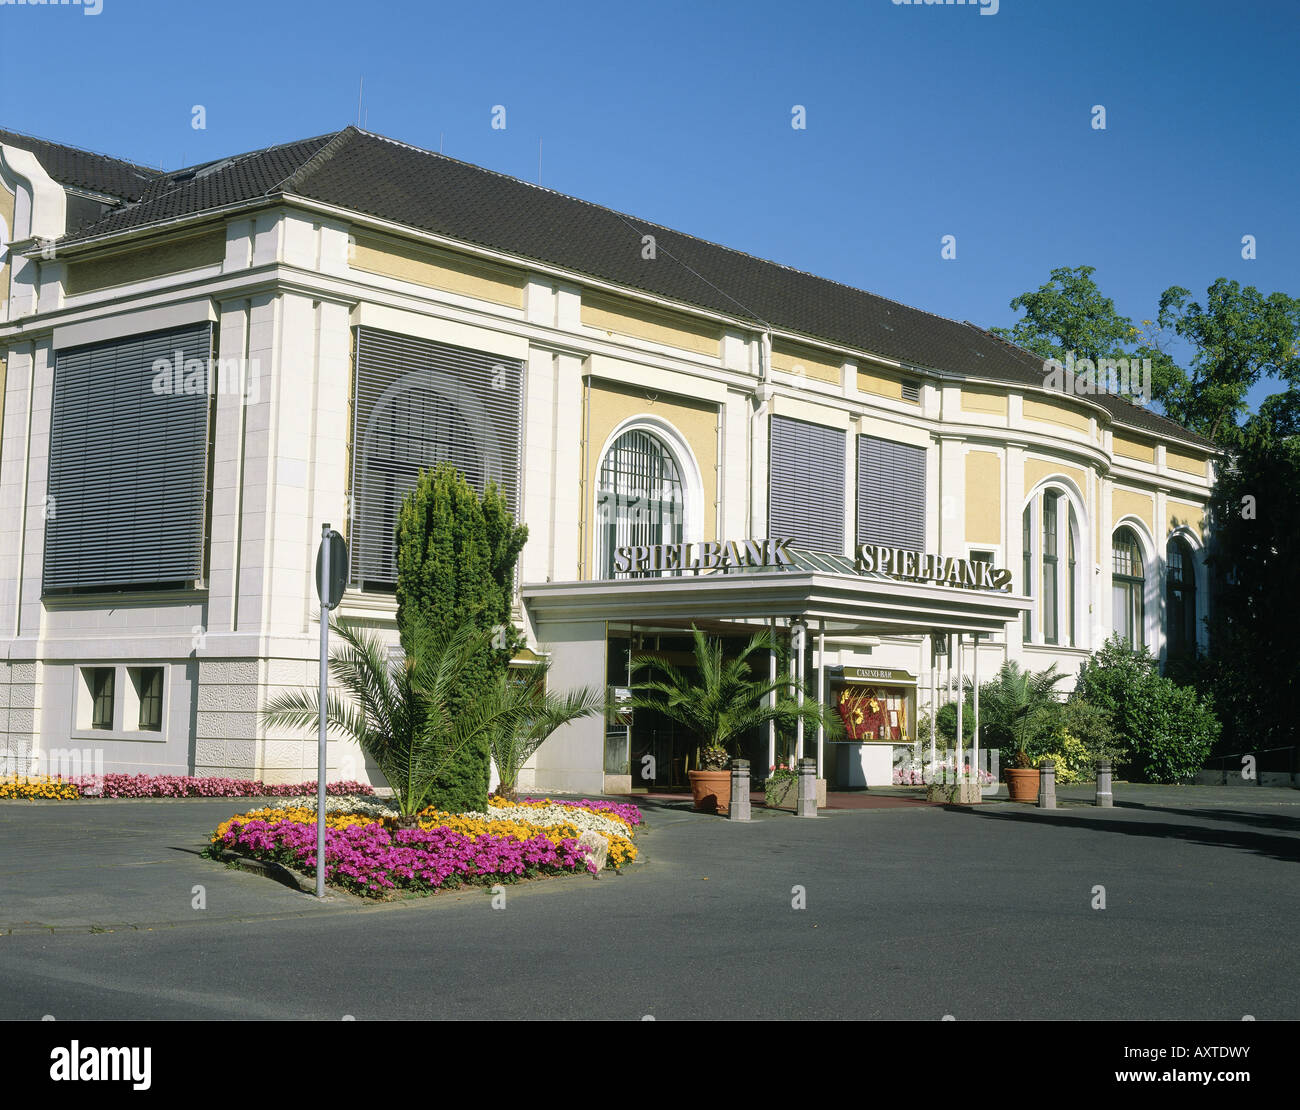 geography / travel, Germany, Rhineland-Palatinate, Bad Neuenahr-Ahrweiler, buildings, casino, built: 1903 - 1905, - Stock Image